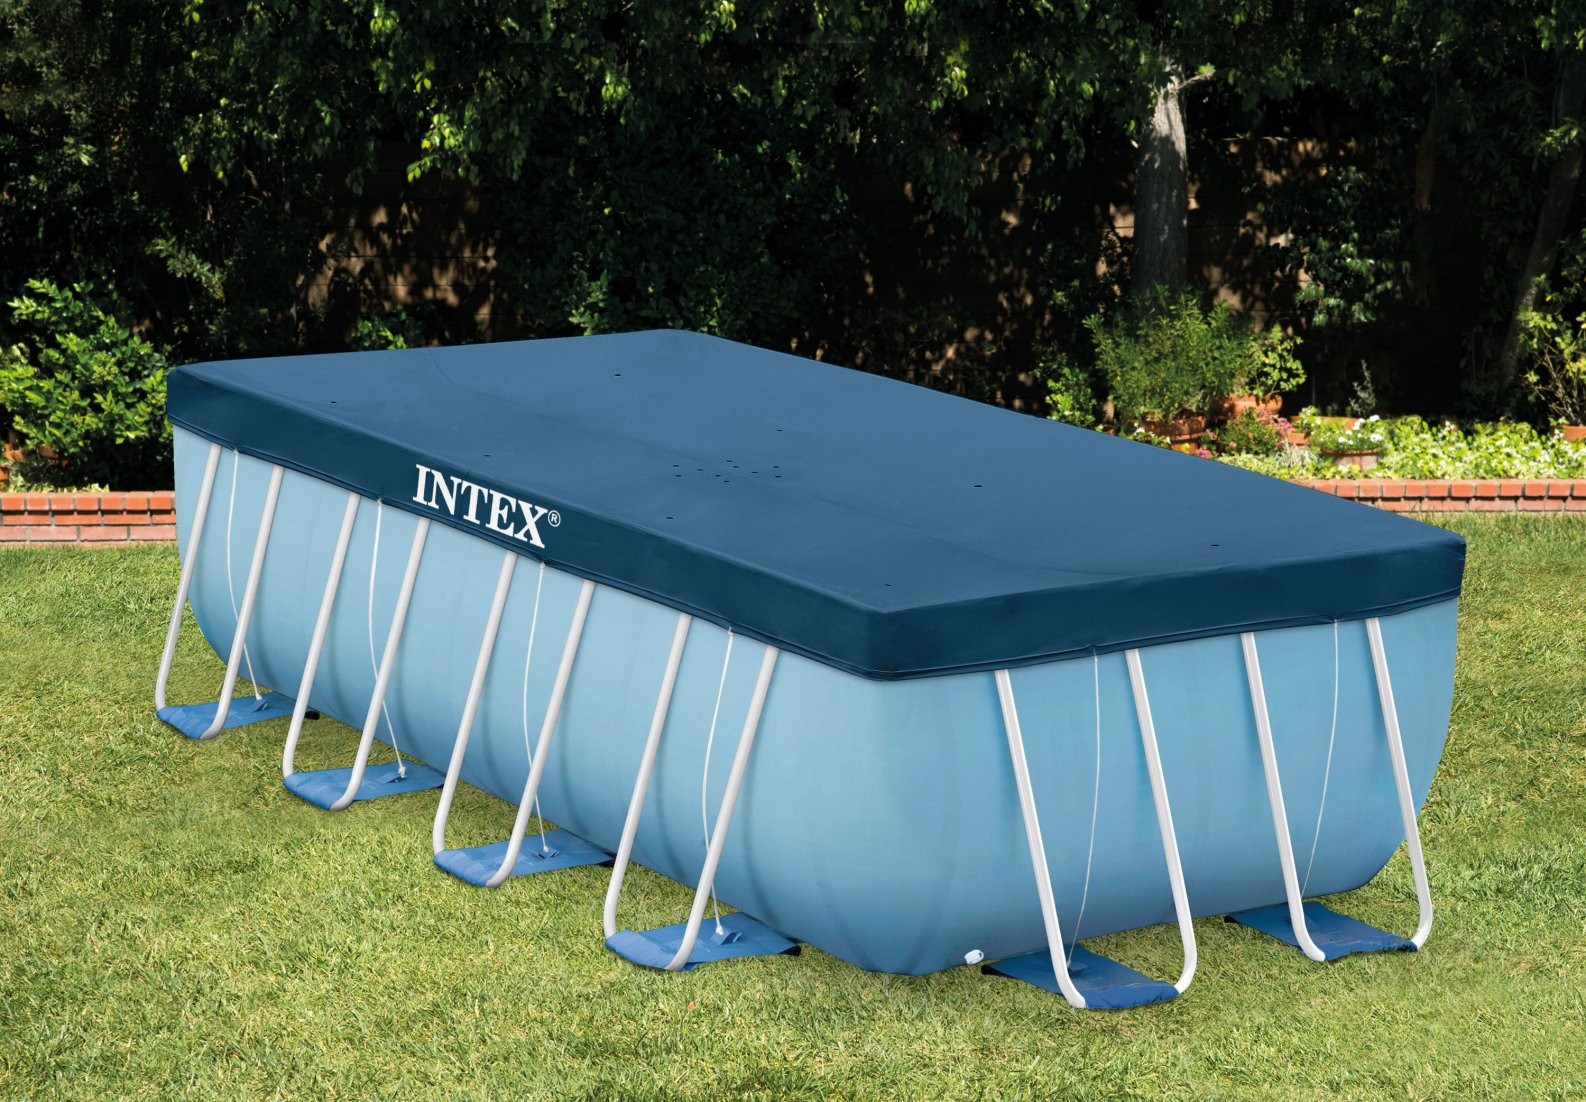 Intex 28037 telo piscina 400 x 200 cm for Prezzi piscine intex